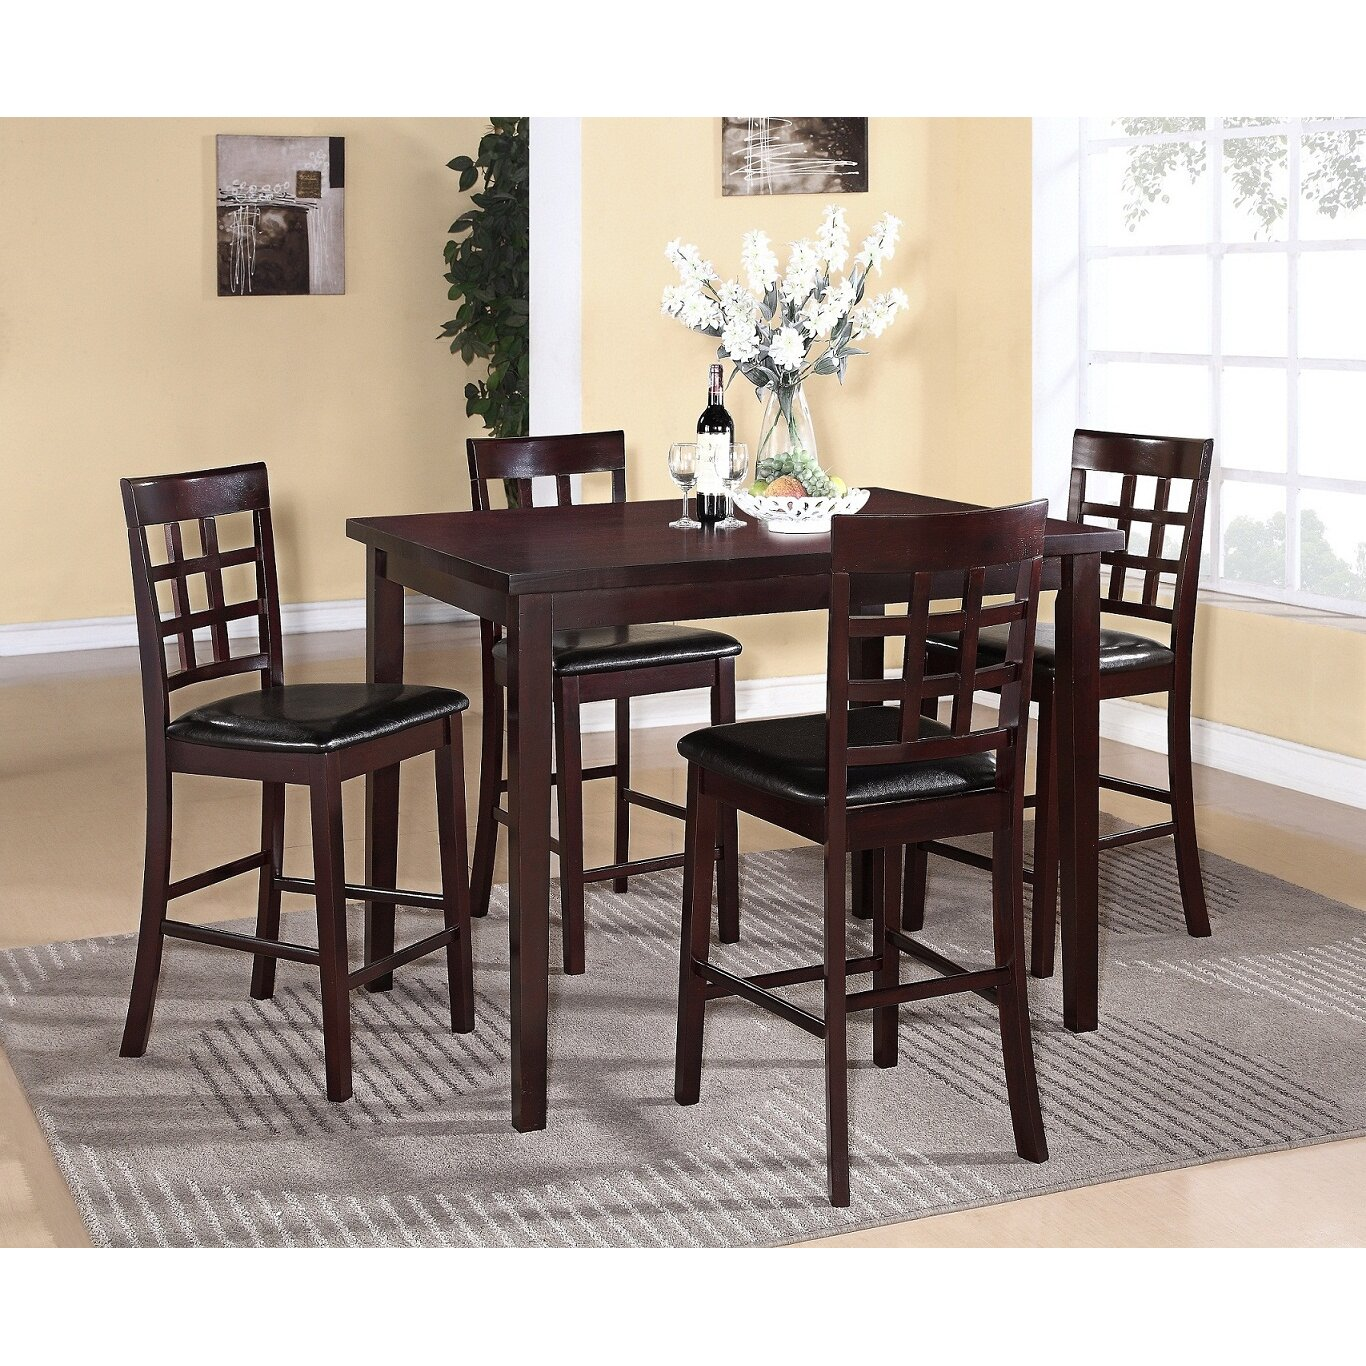 Red Dining Set: Red Barrel Studio Plymouth 5 Piece Counter Height Dining